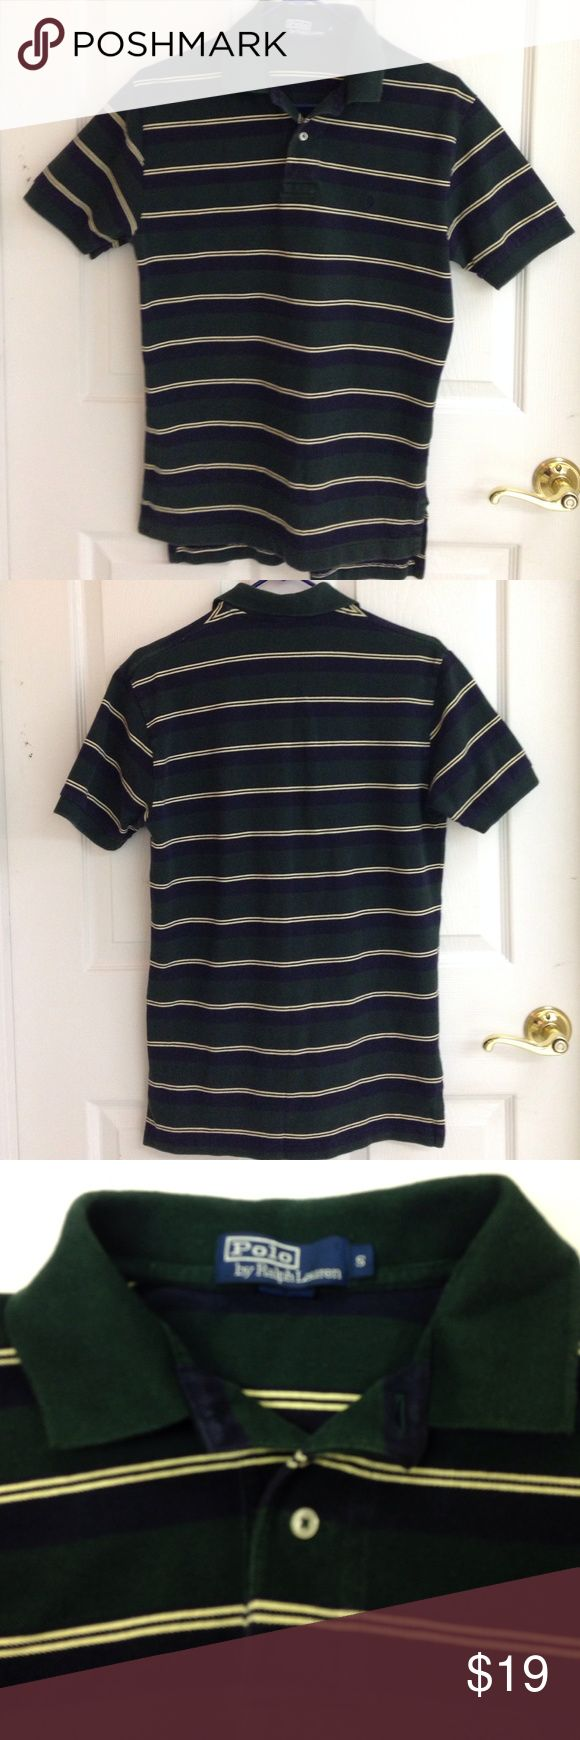 POLO by Ralph Lauren Polo Shirt Polo by Ralph Lauren Striped polo shirt. Green, navy blue, cream. 100% cotton. In very good pre used condition. Polo by Ralph Lauren Shirts Polos